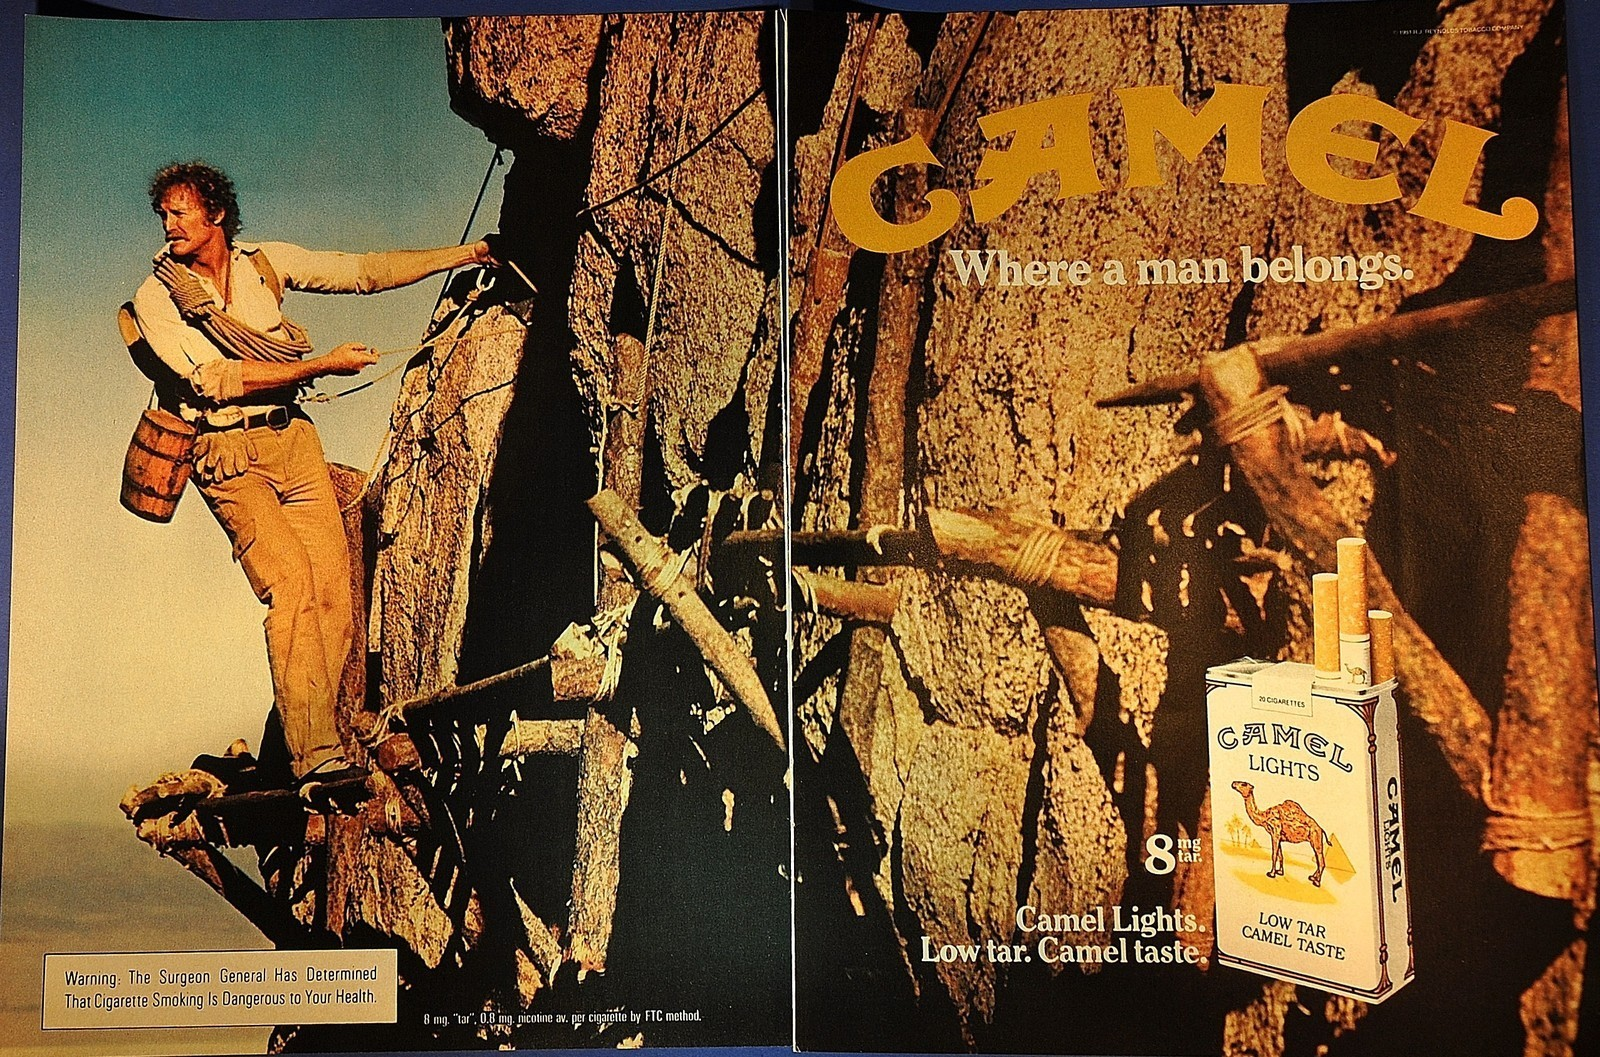 'Cowboy Look is the One I Sought': Camel Cigarette Ads ... | 1600 x 1057 jpeg 739kB